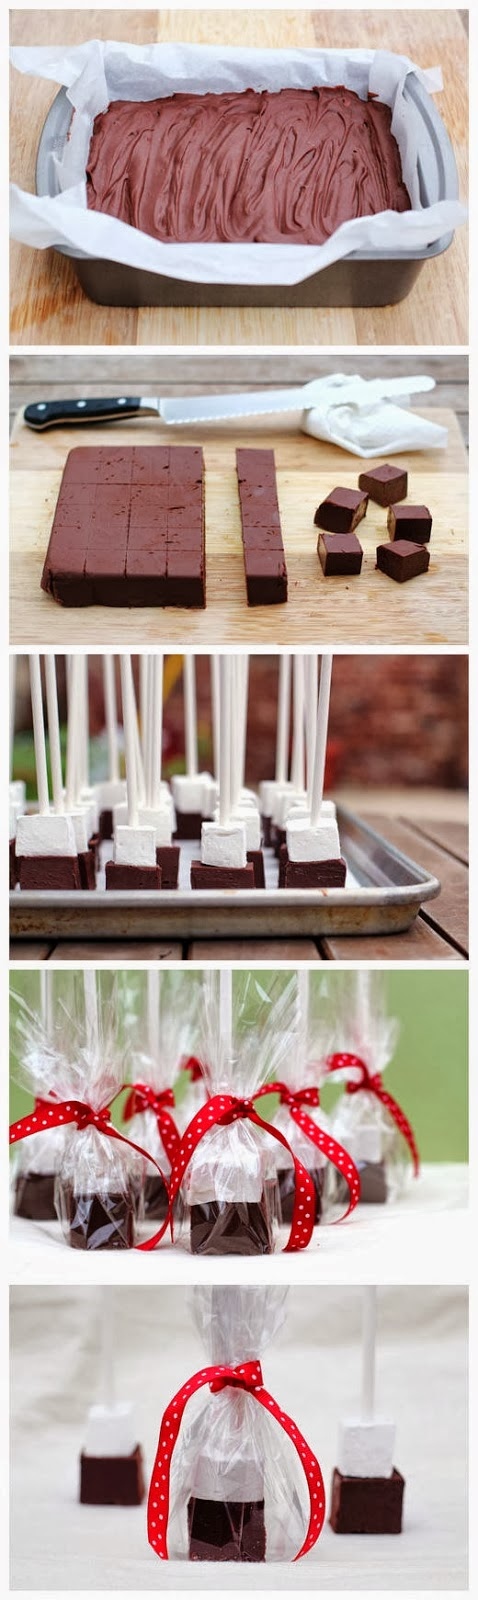 #Recipes : Hot Chocolate Blocks